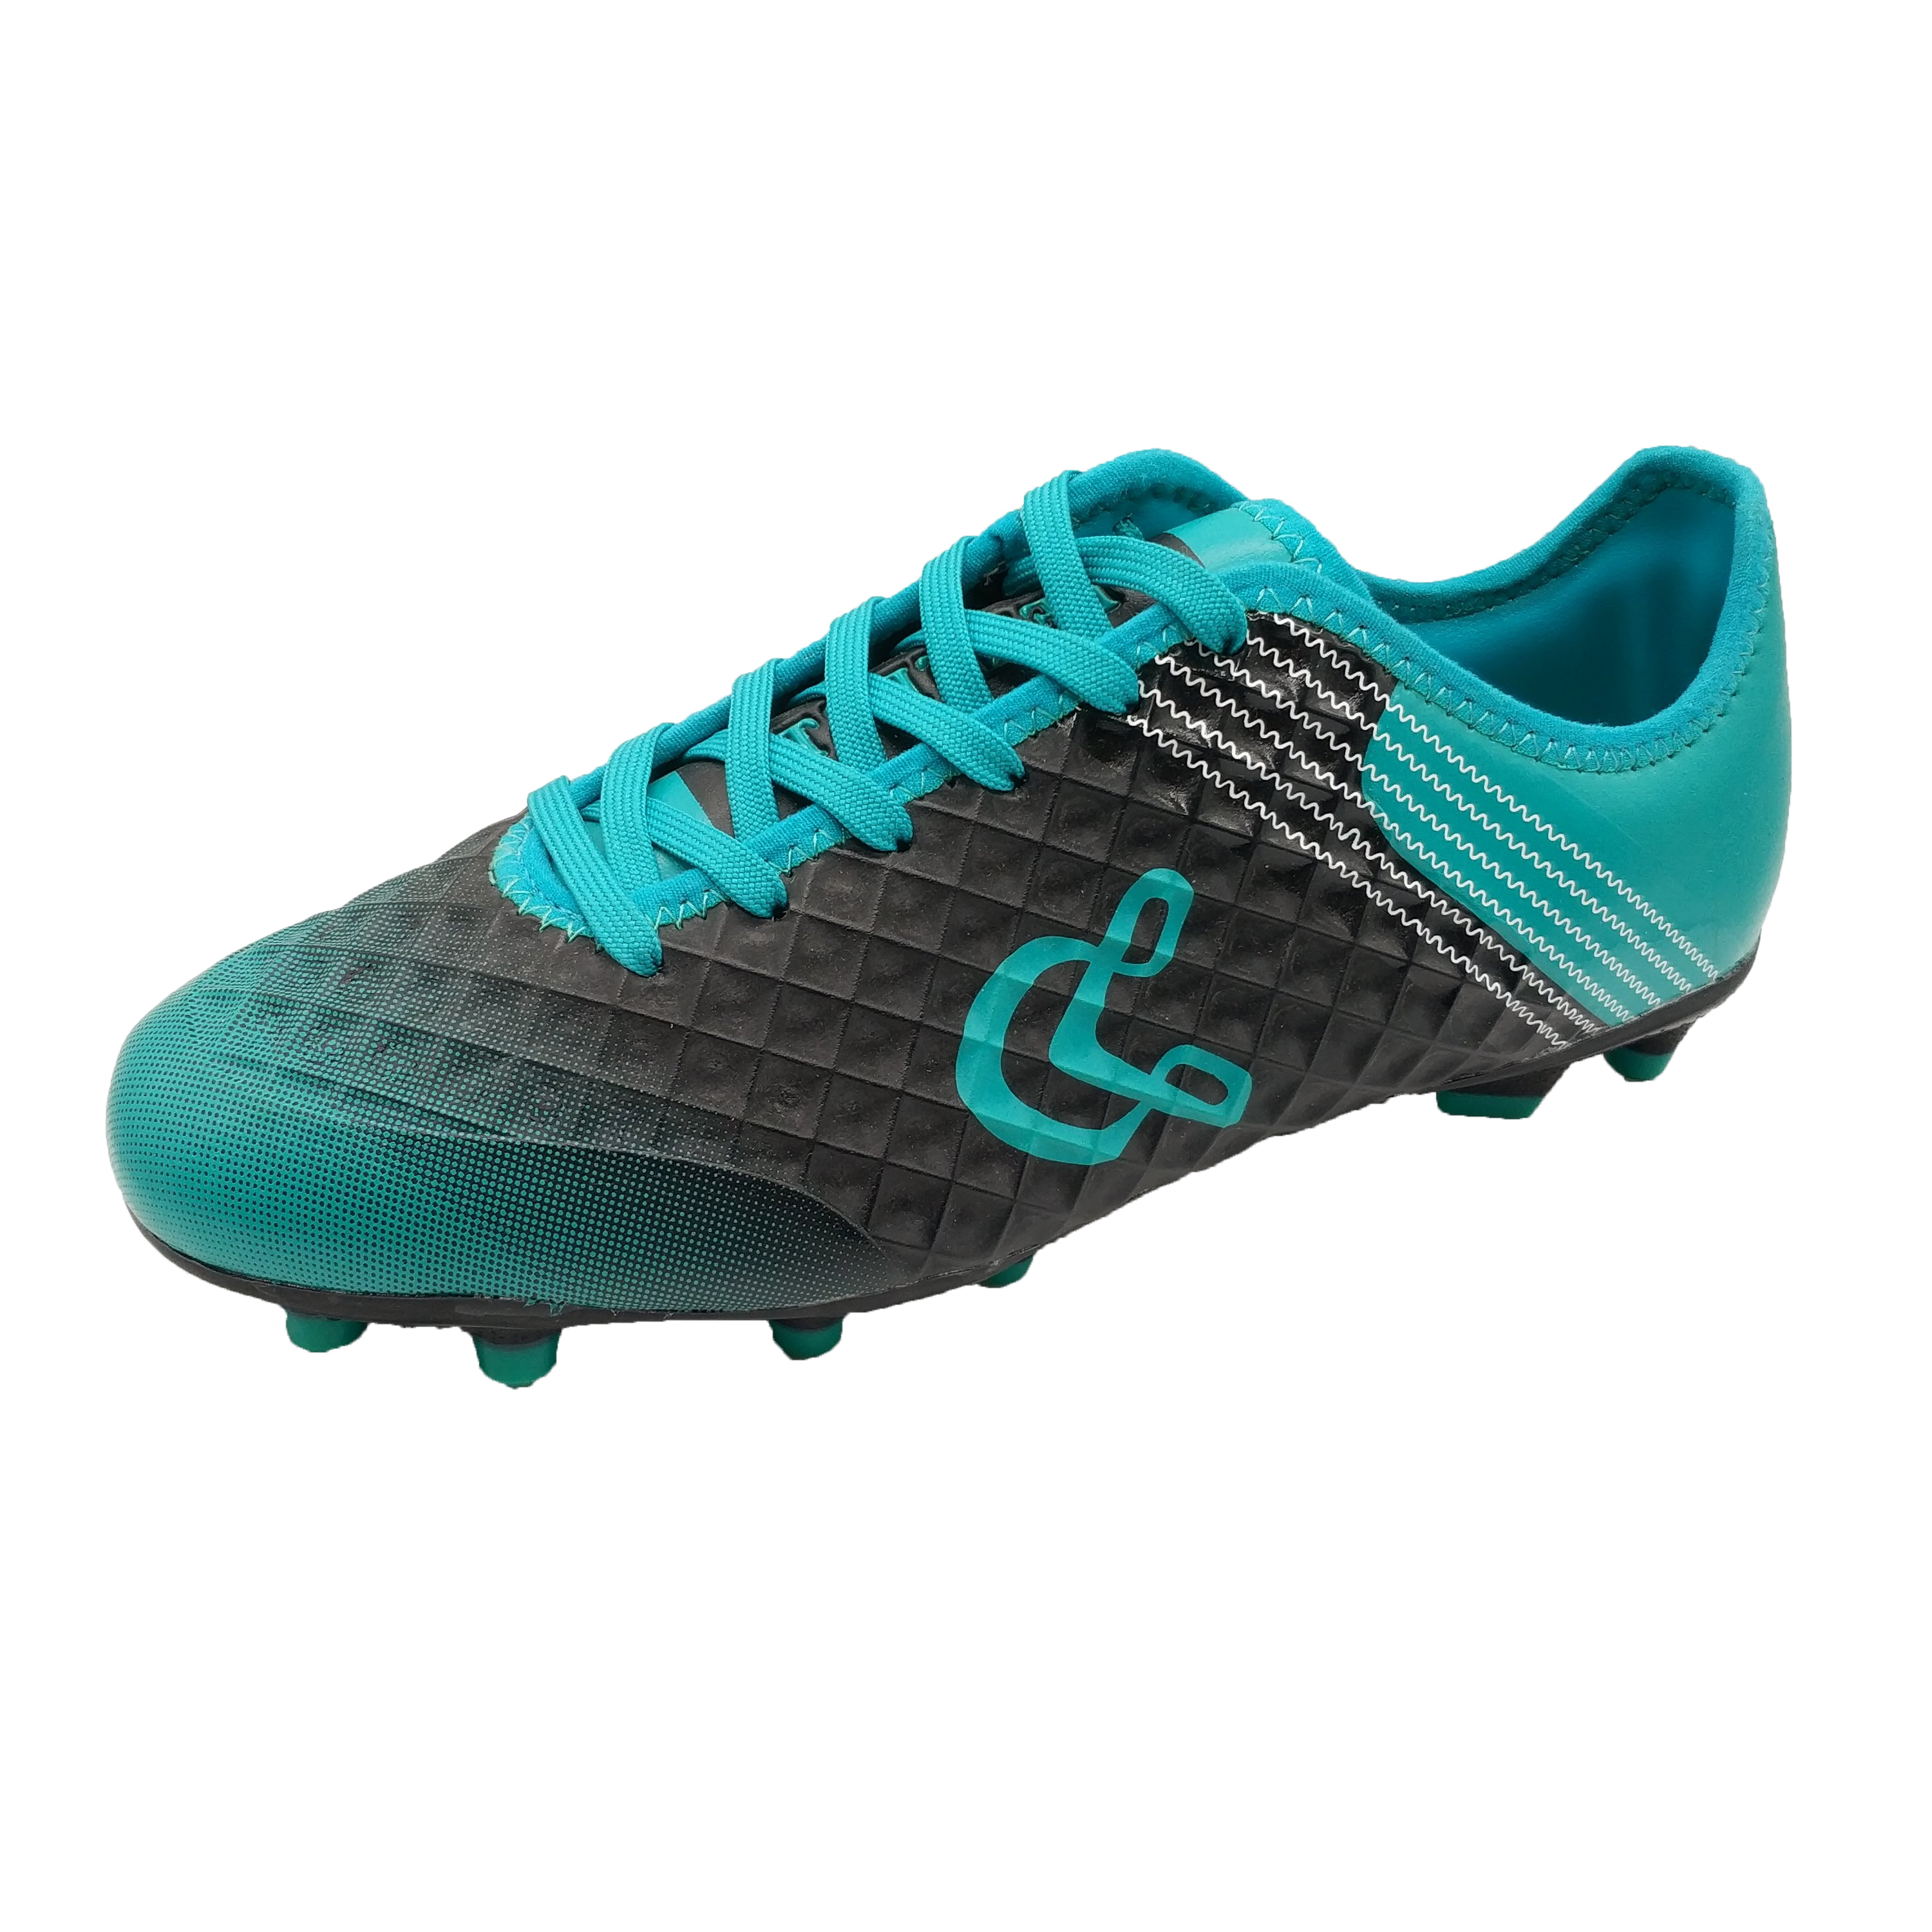 Youth Soccer Shoes Outdoor Turf Football Shoes For Sale